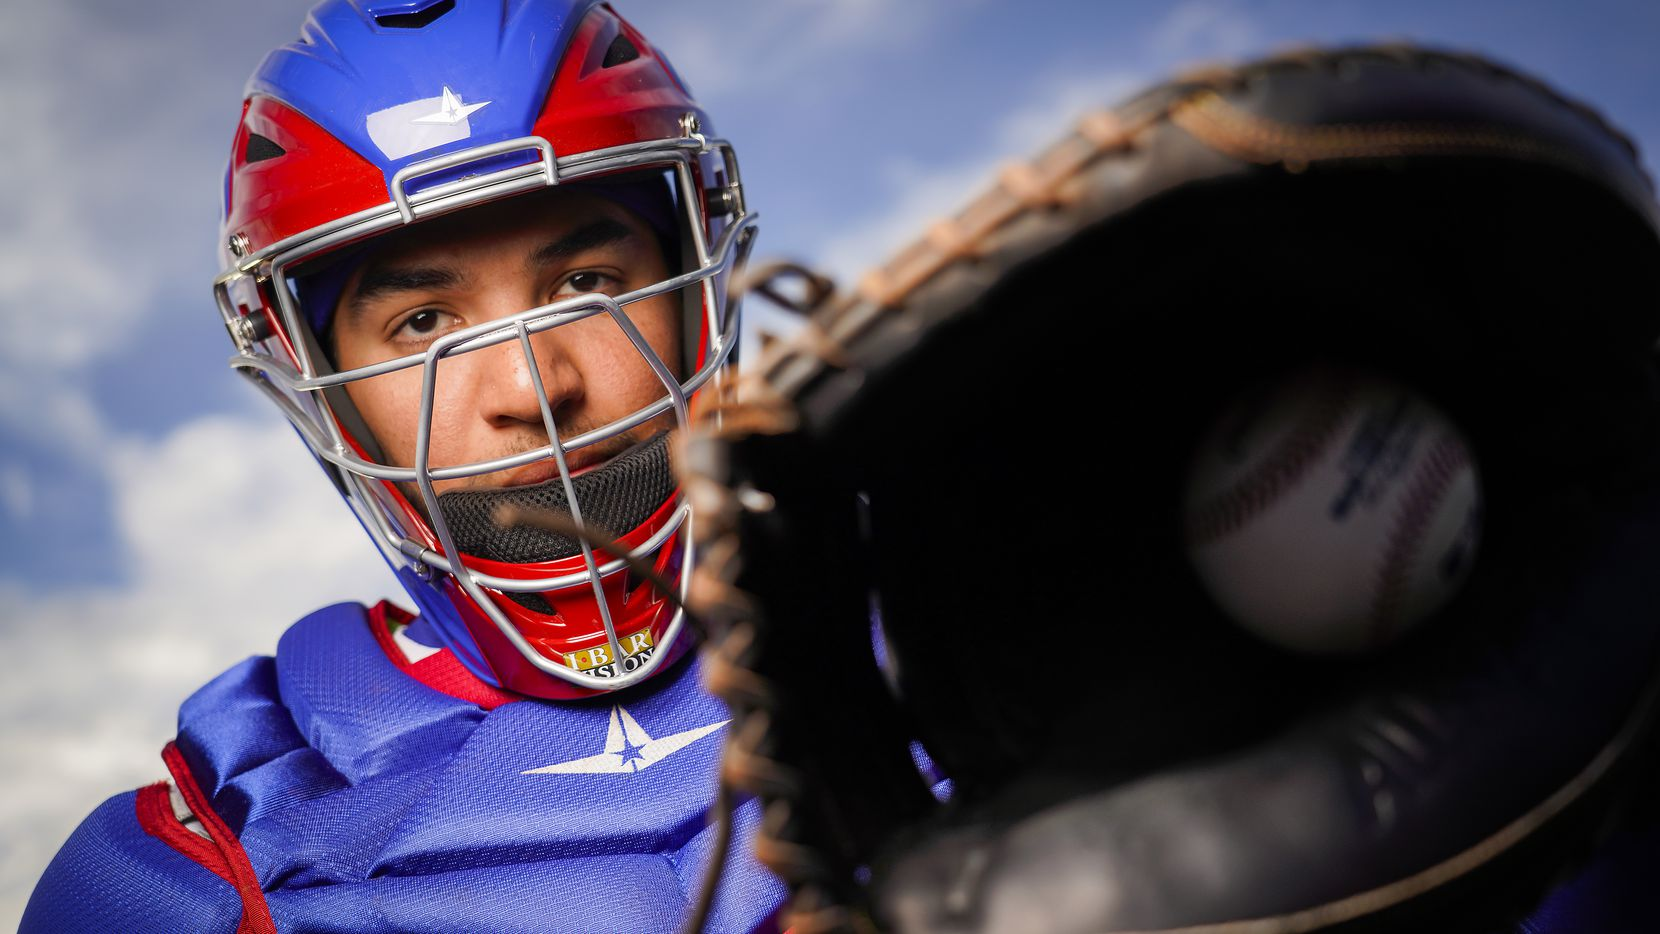 Texas Rangers catcher Jose Trevino pictured during photo day at the team's spring training facility on Wednesday, Feb. 19, 2020, in Surprise, Ariz.